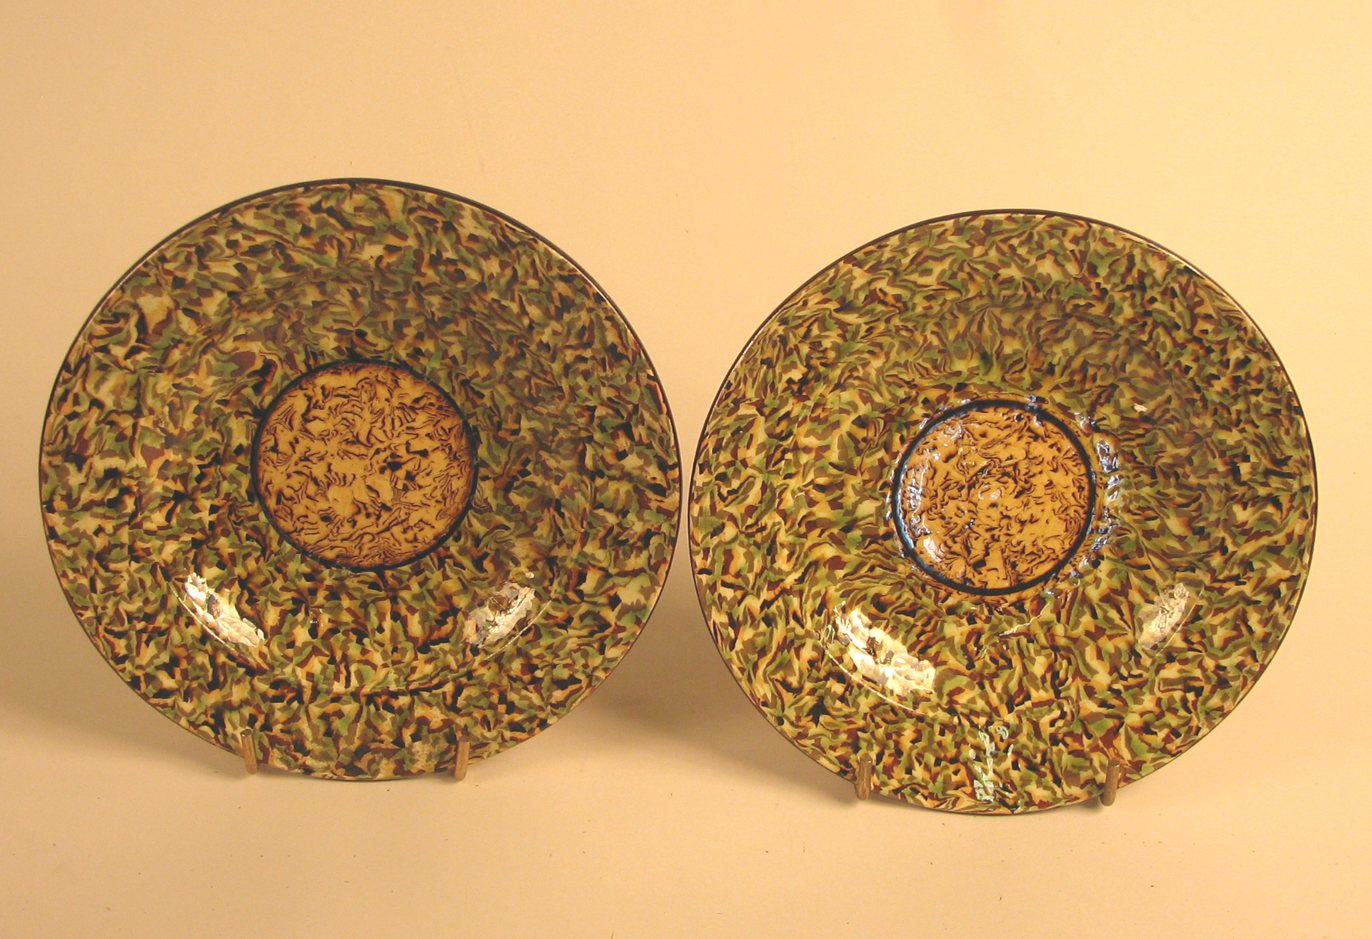 Thumbnail image for A Pair of Bowls by Pichon